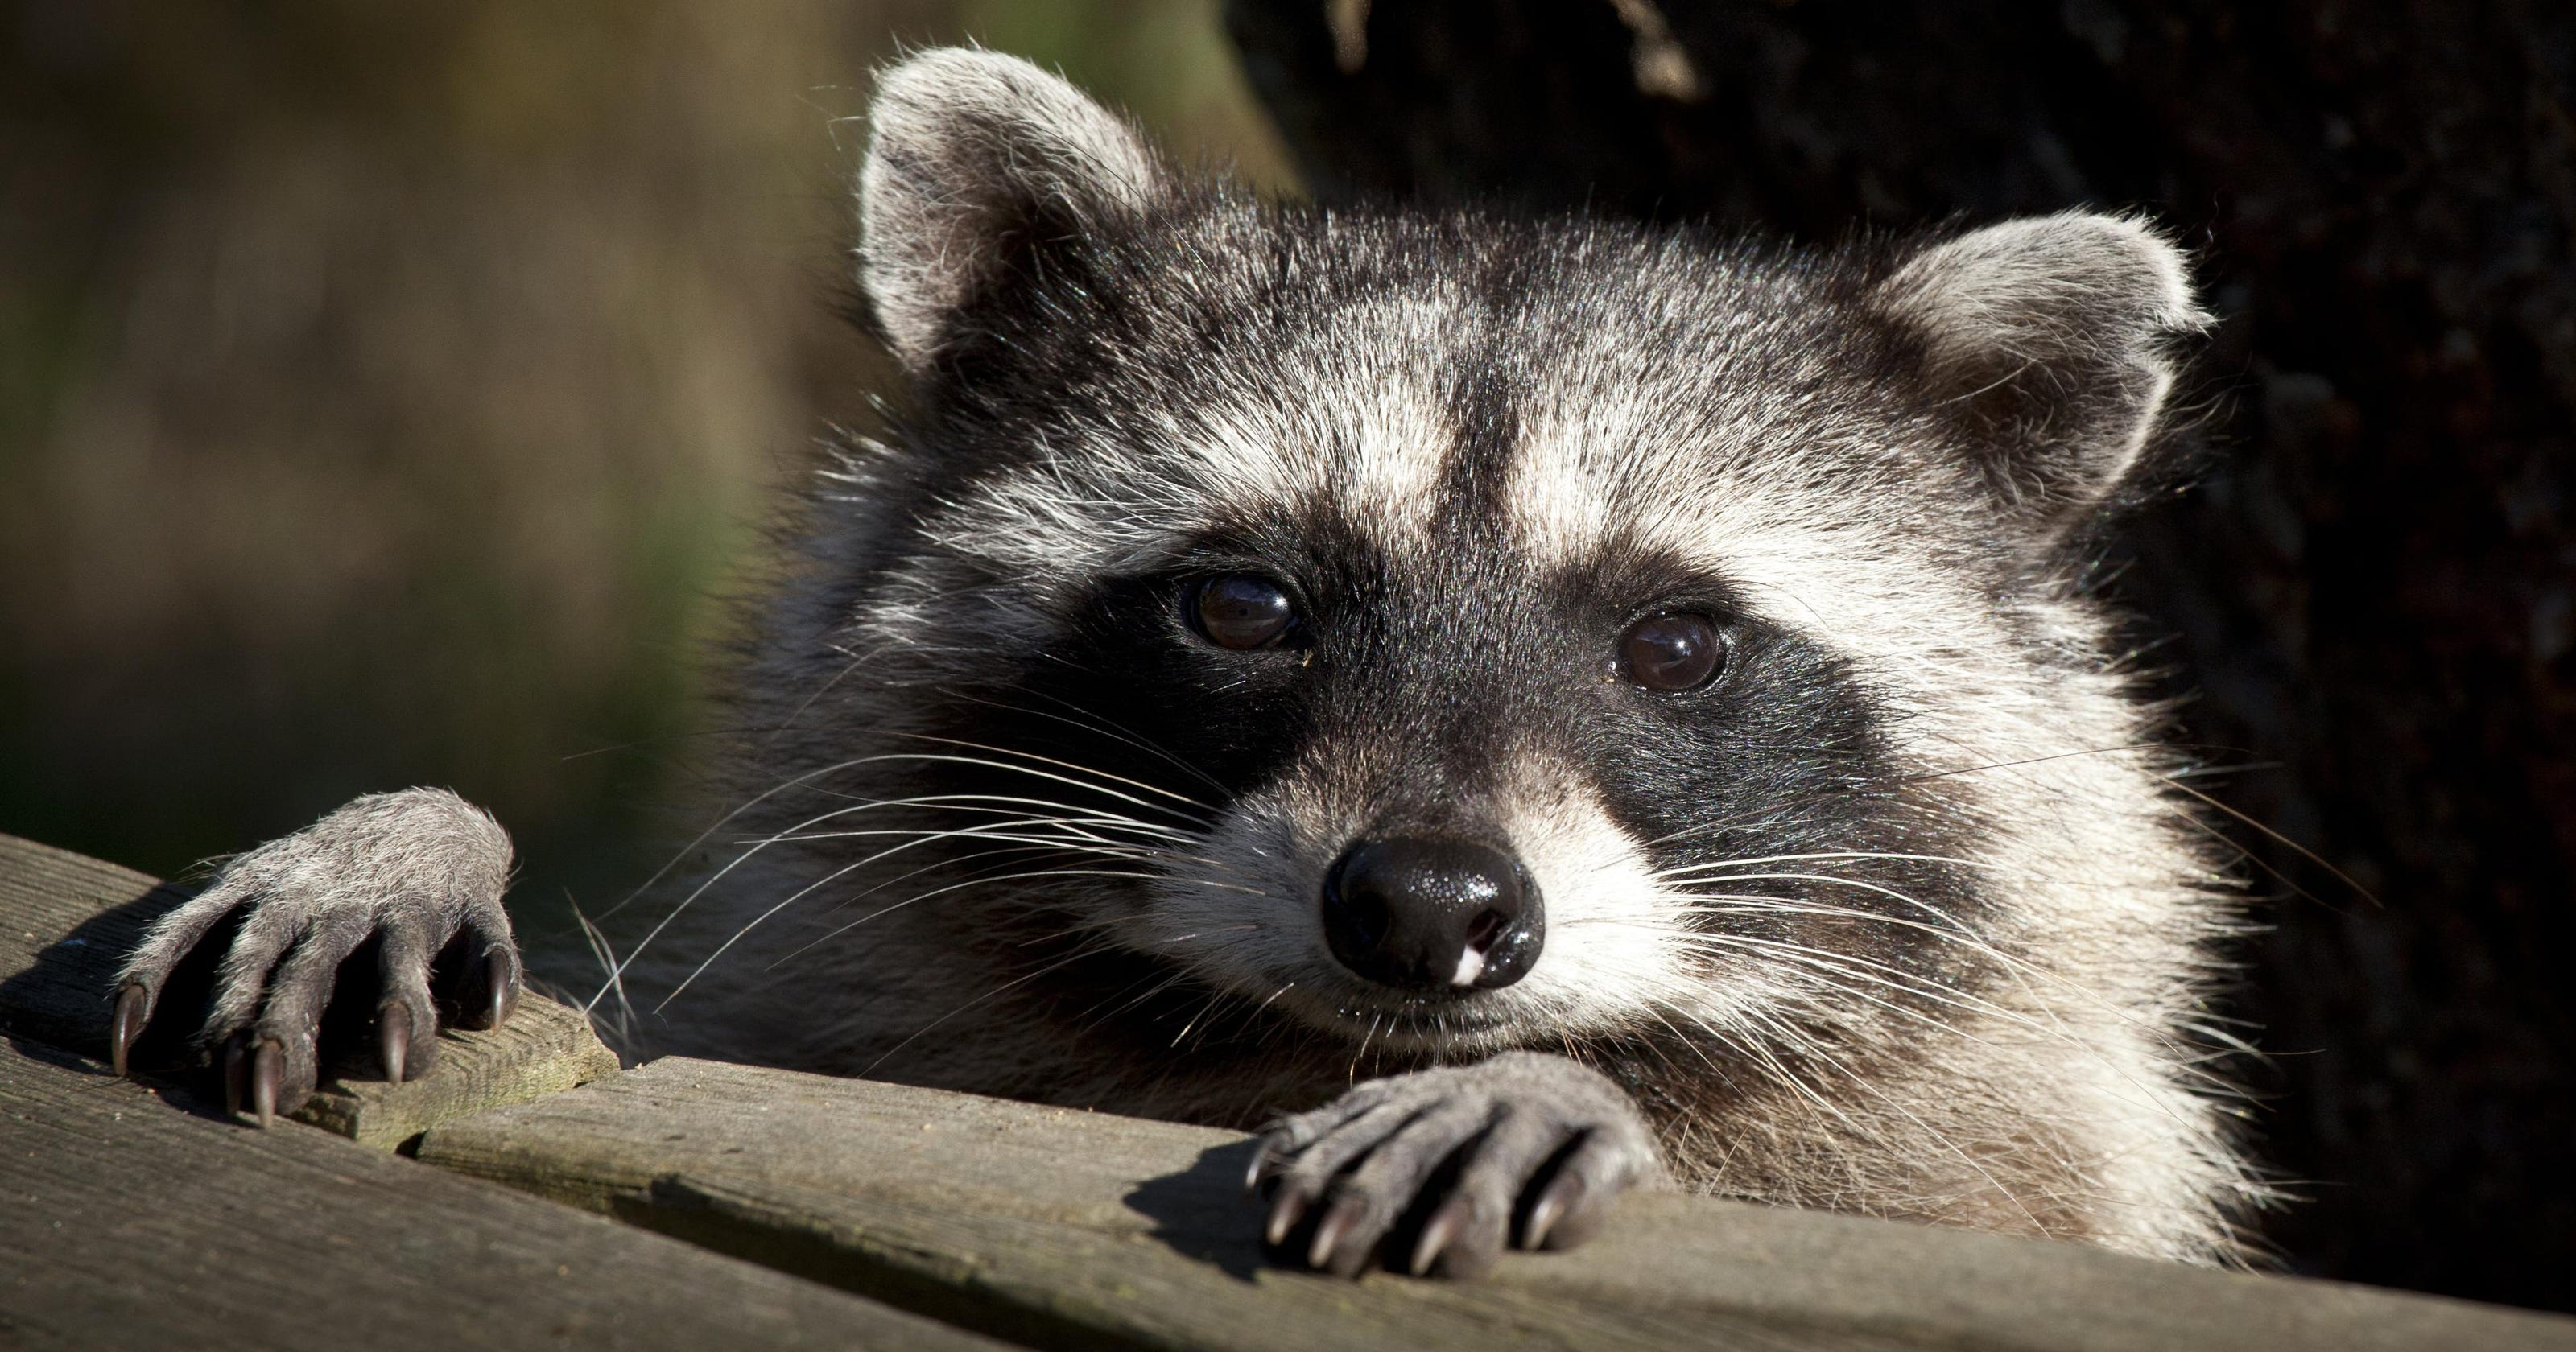 Raccoons Coyotes Opossums To Be Euthanized Under